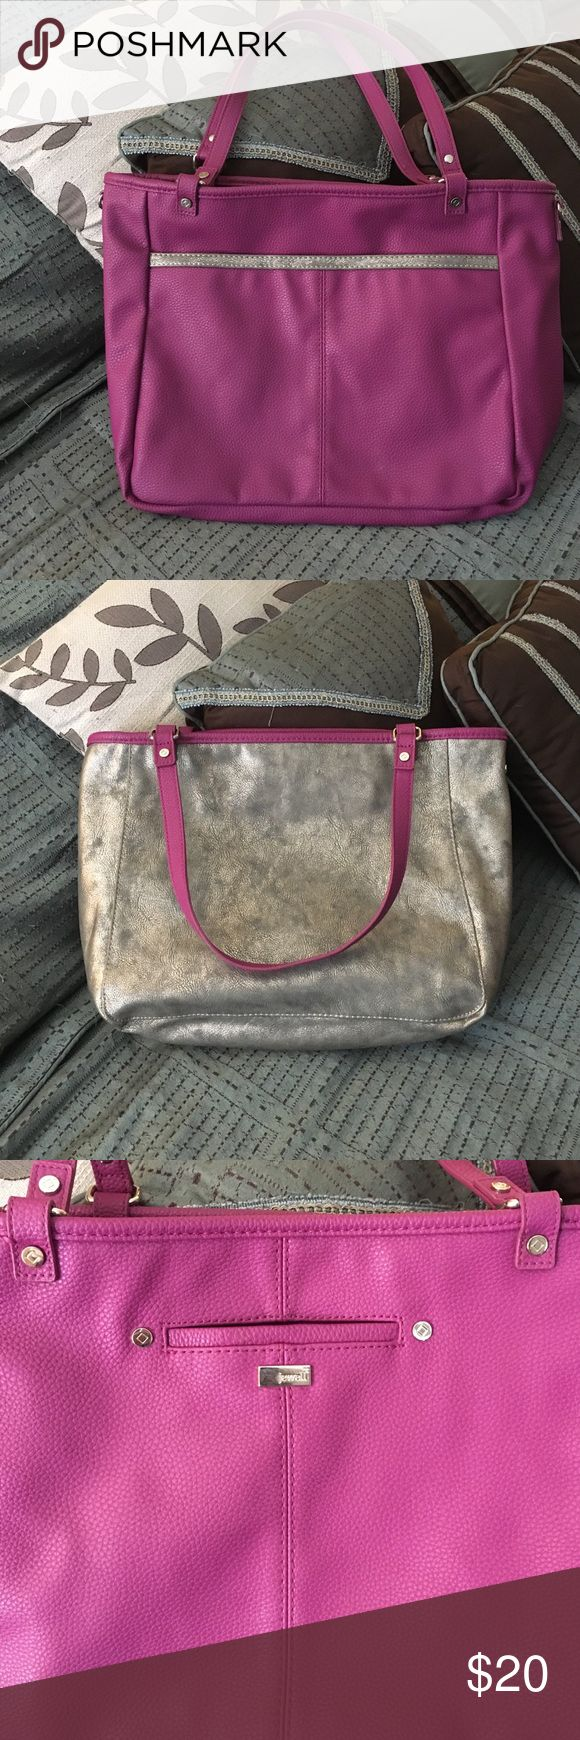 Reversible Handbag Great handbag for a woman on the go. Easily fits a couple of school books and your daily essentials. Thirty One Bags Totes